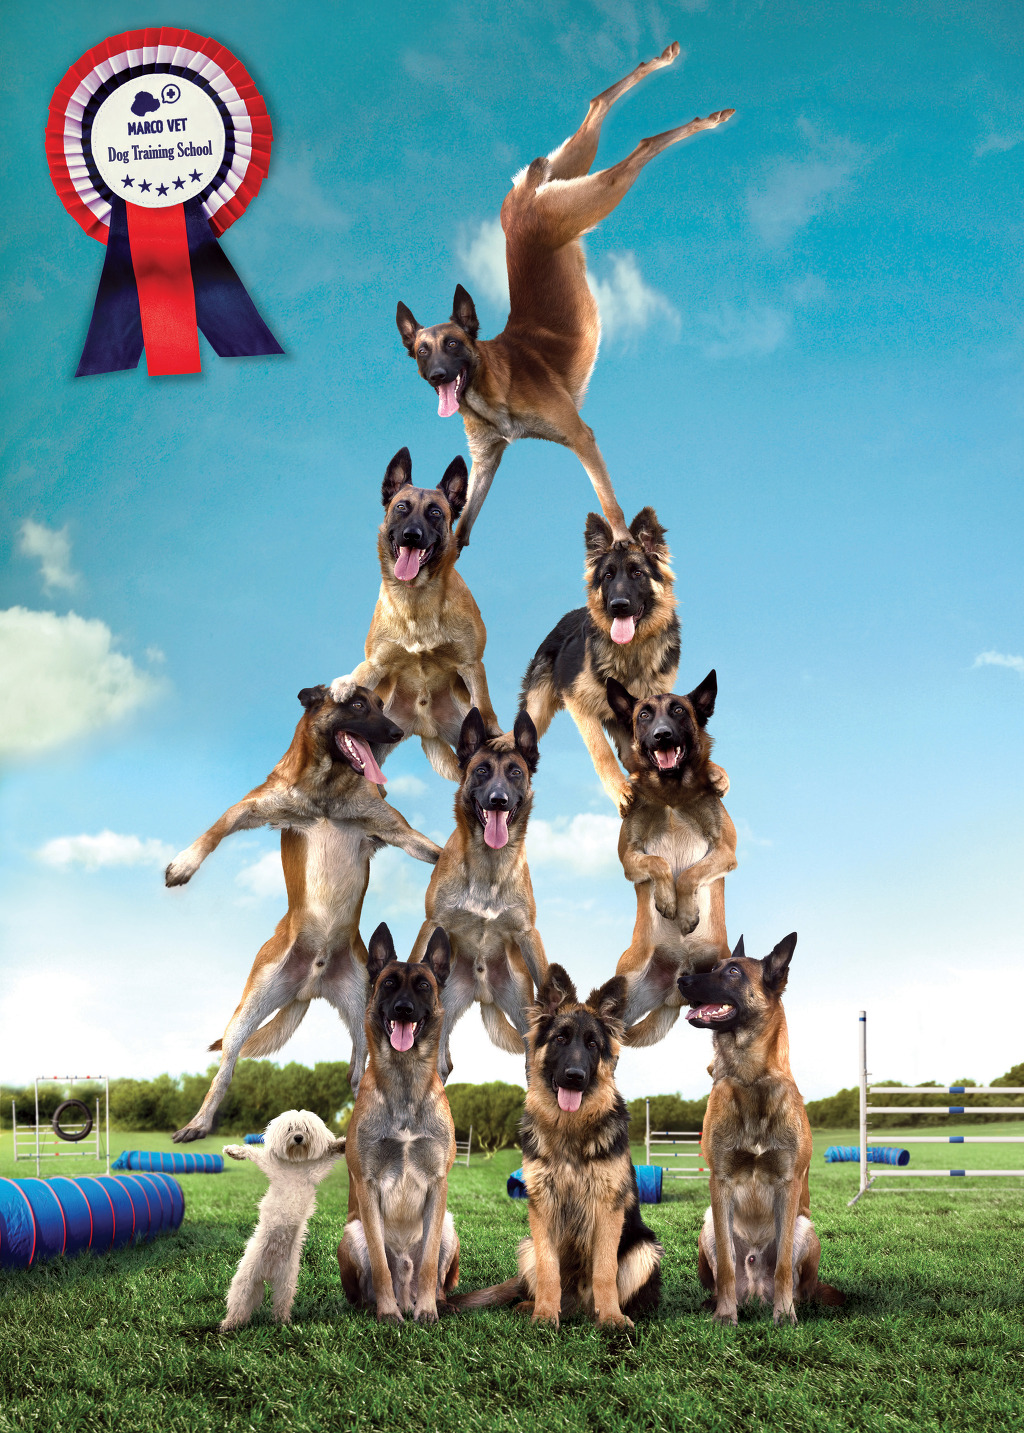 MARCOVET - Dog Trainig School: Pyramid